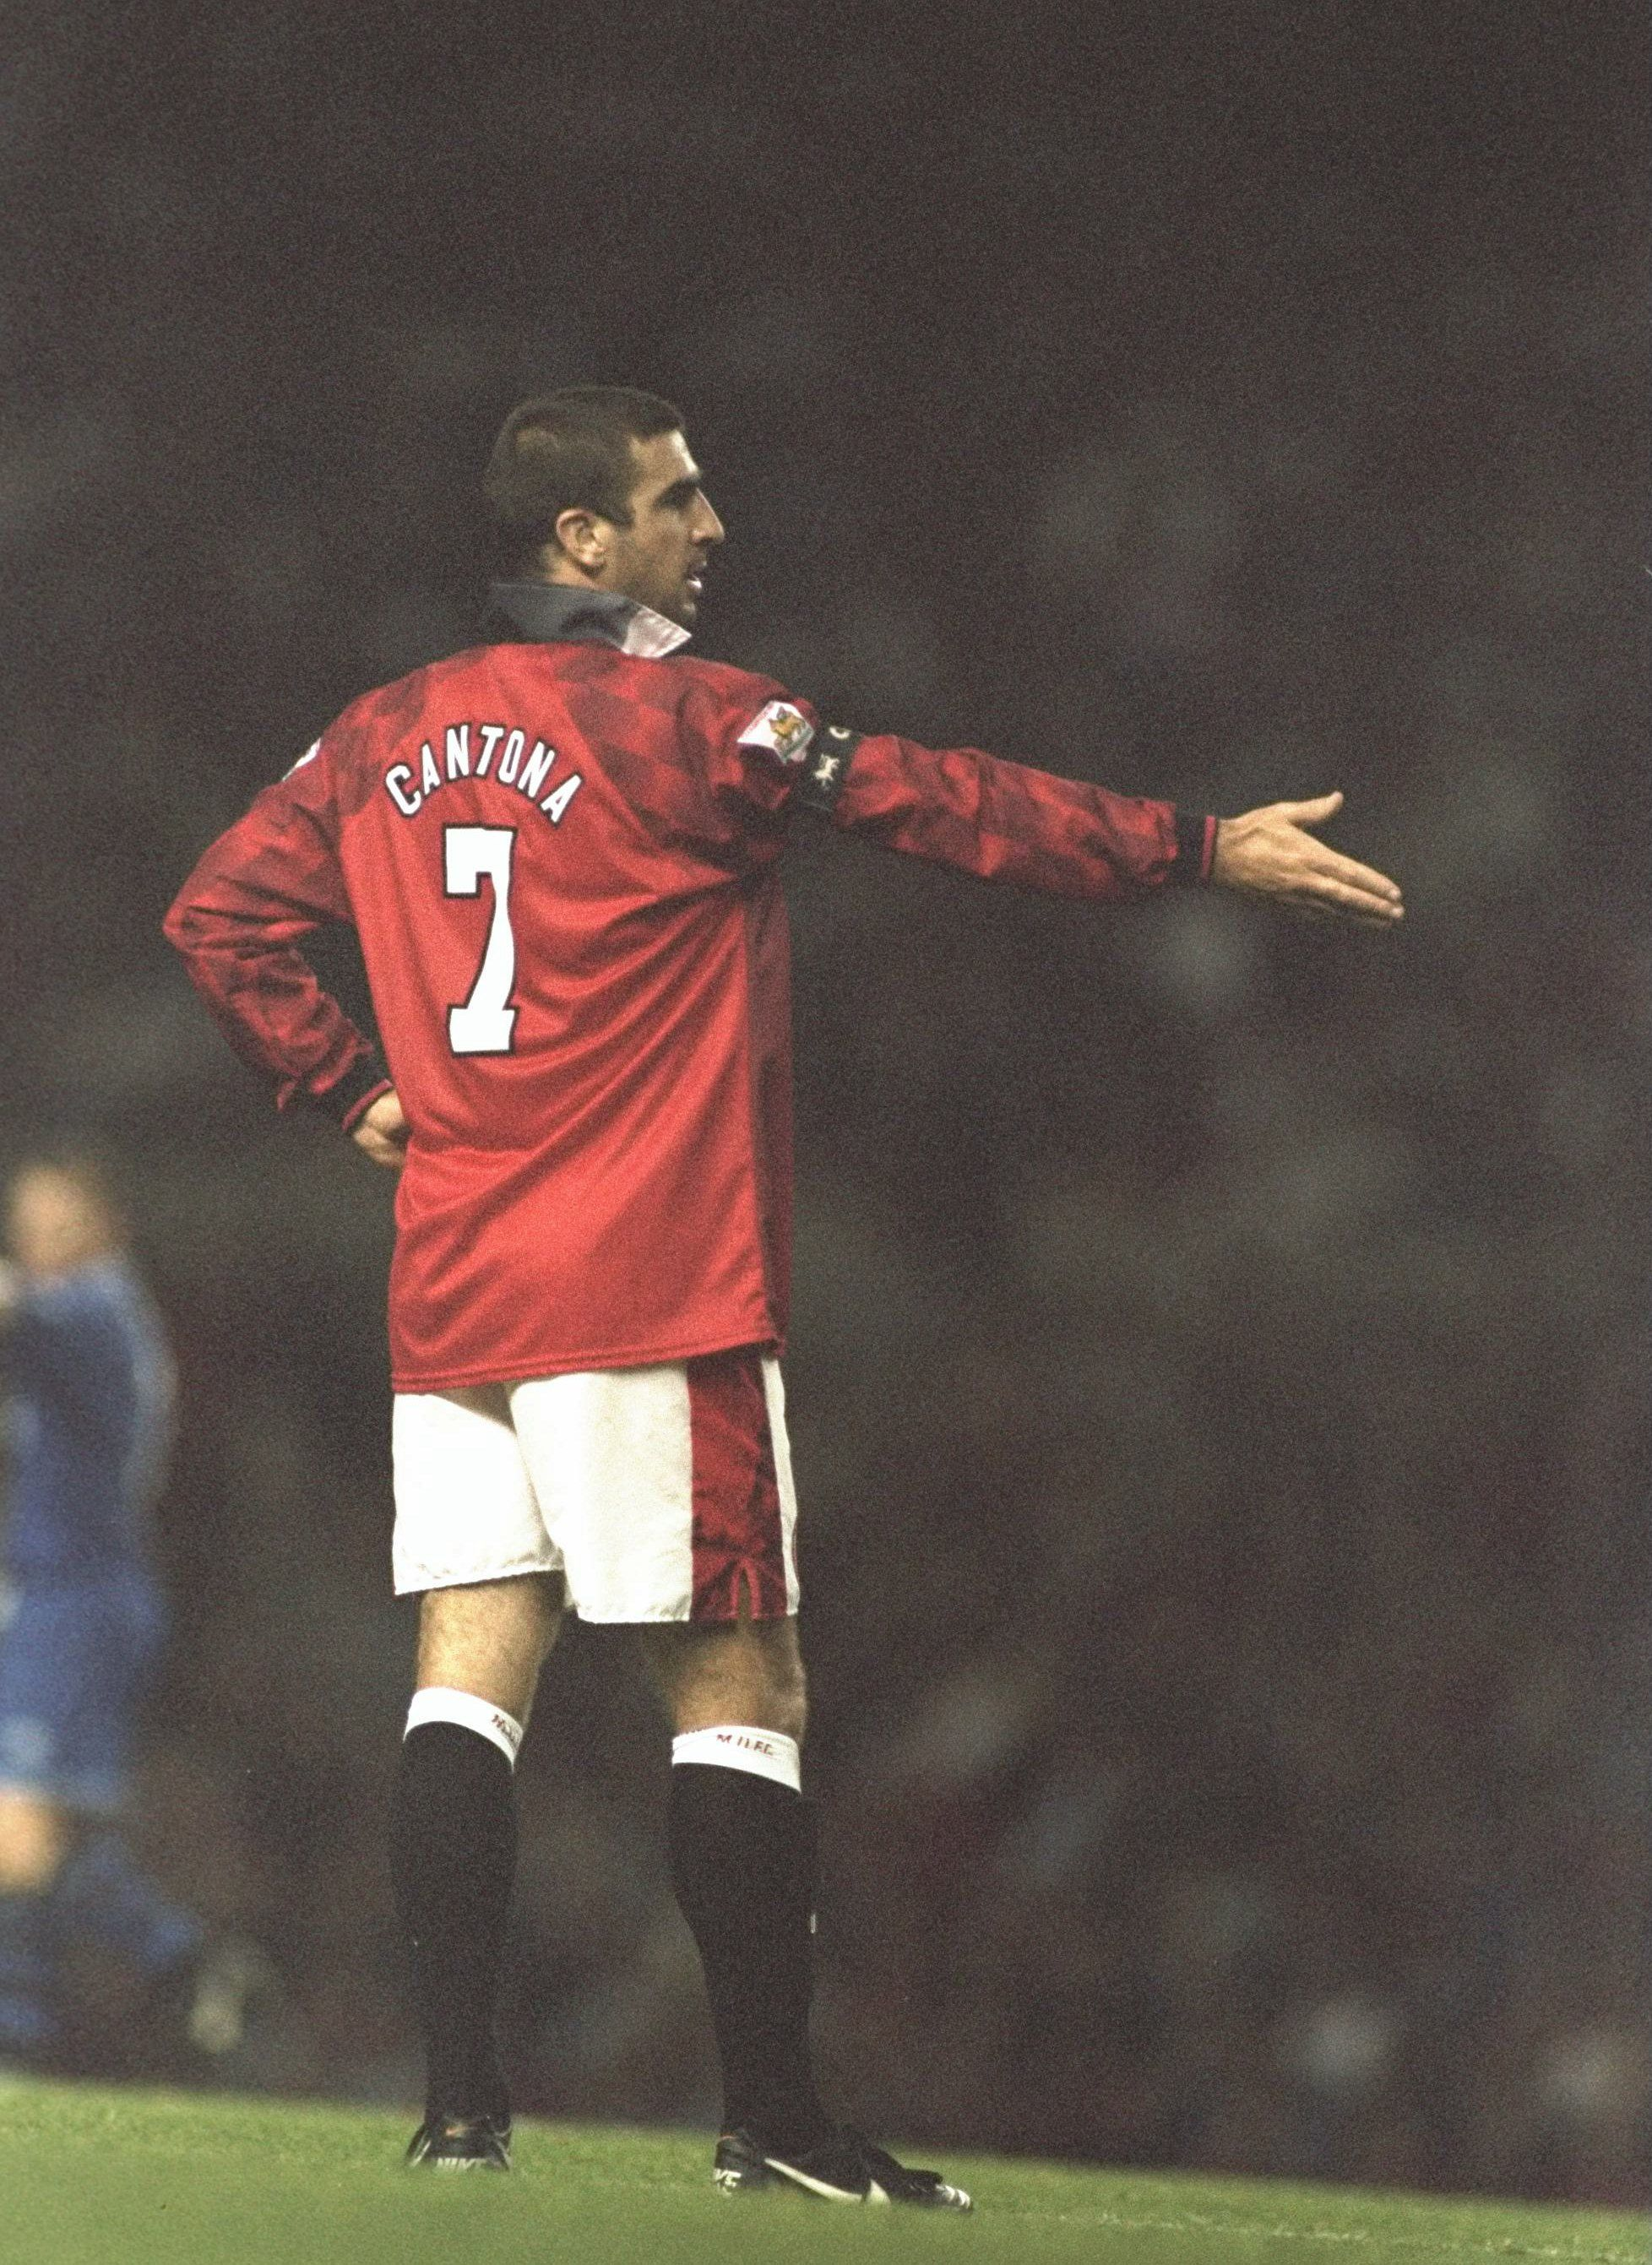 Eric Cantona In Typical Nonchalant Pose Eric Cantona Manchester United Football Club Manchester United Team